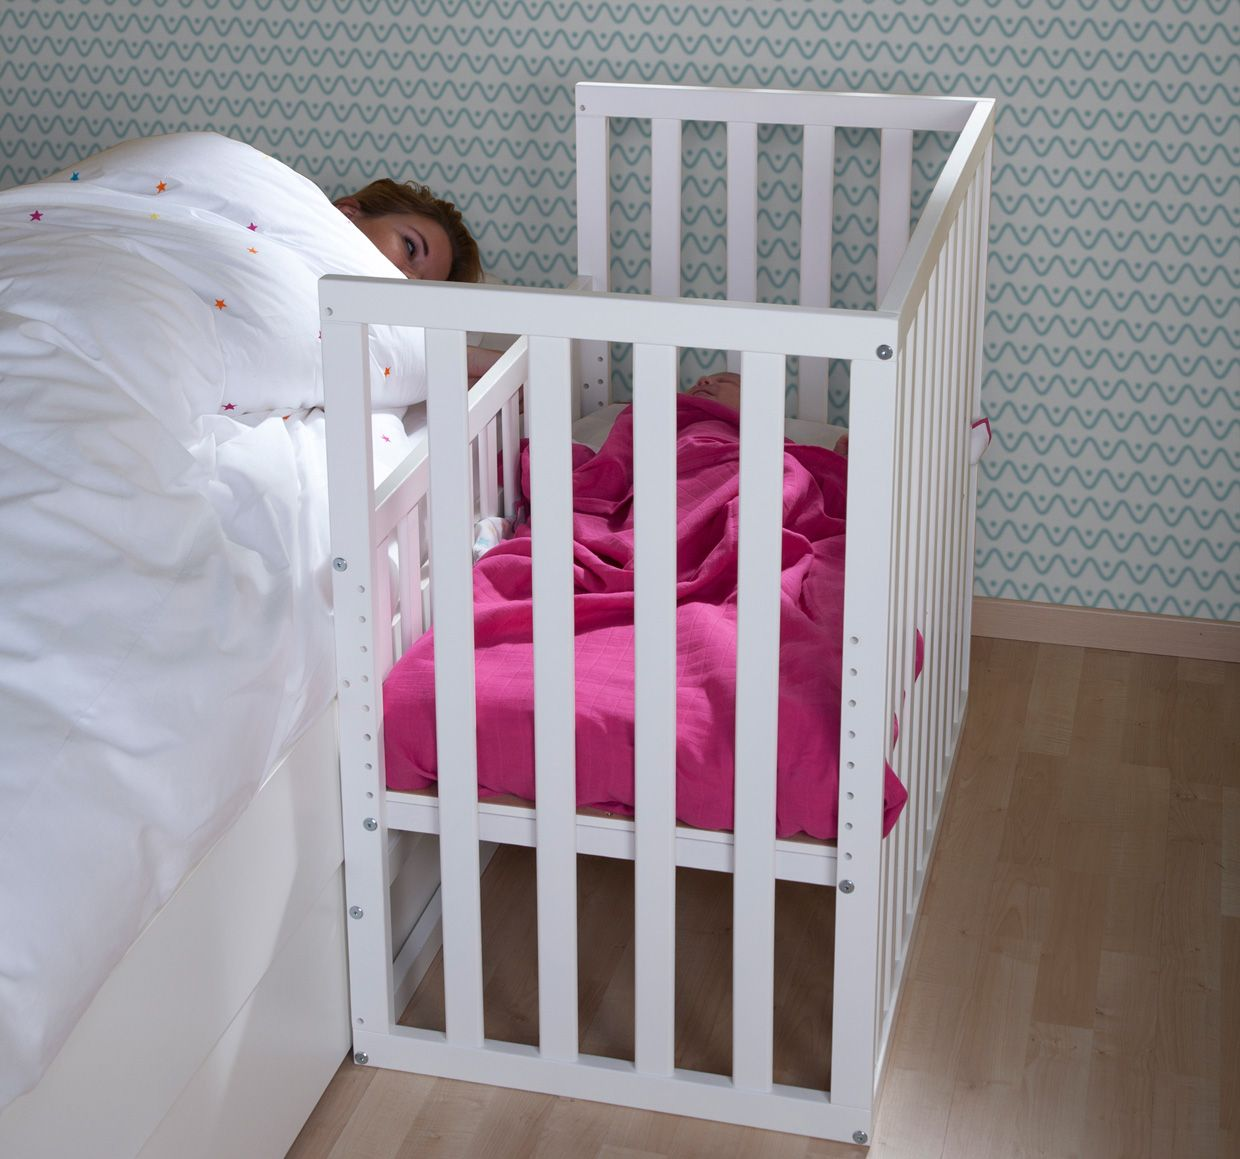 Baby cribs keep your baby close - Bed Side Crib To Keep Your Baby Near You During The Night Can Be Attached